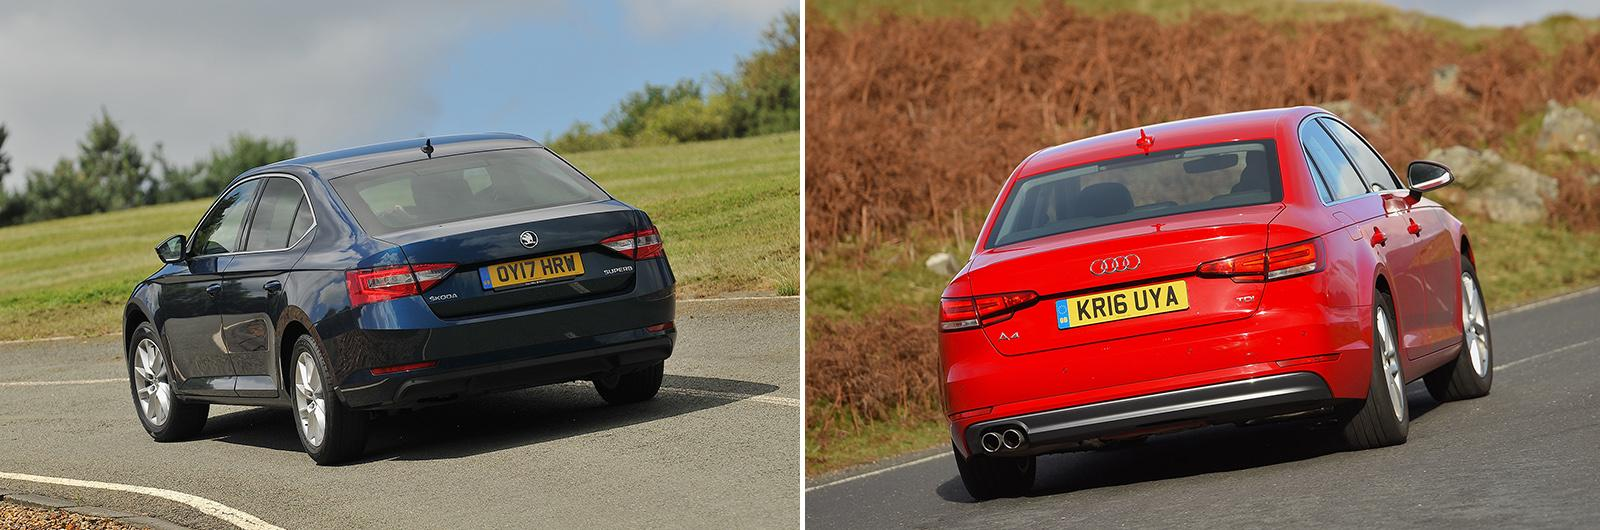 New Skoda Superb vs used Audi A4: which is best?